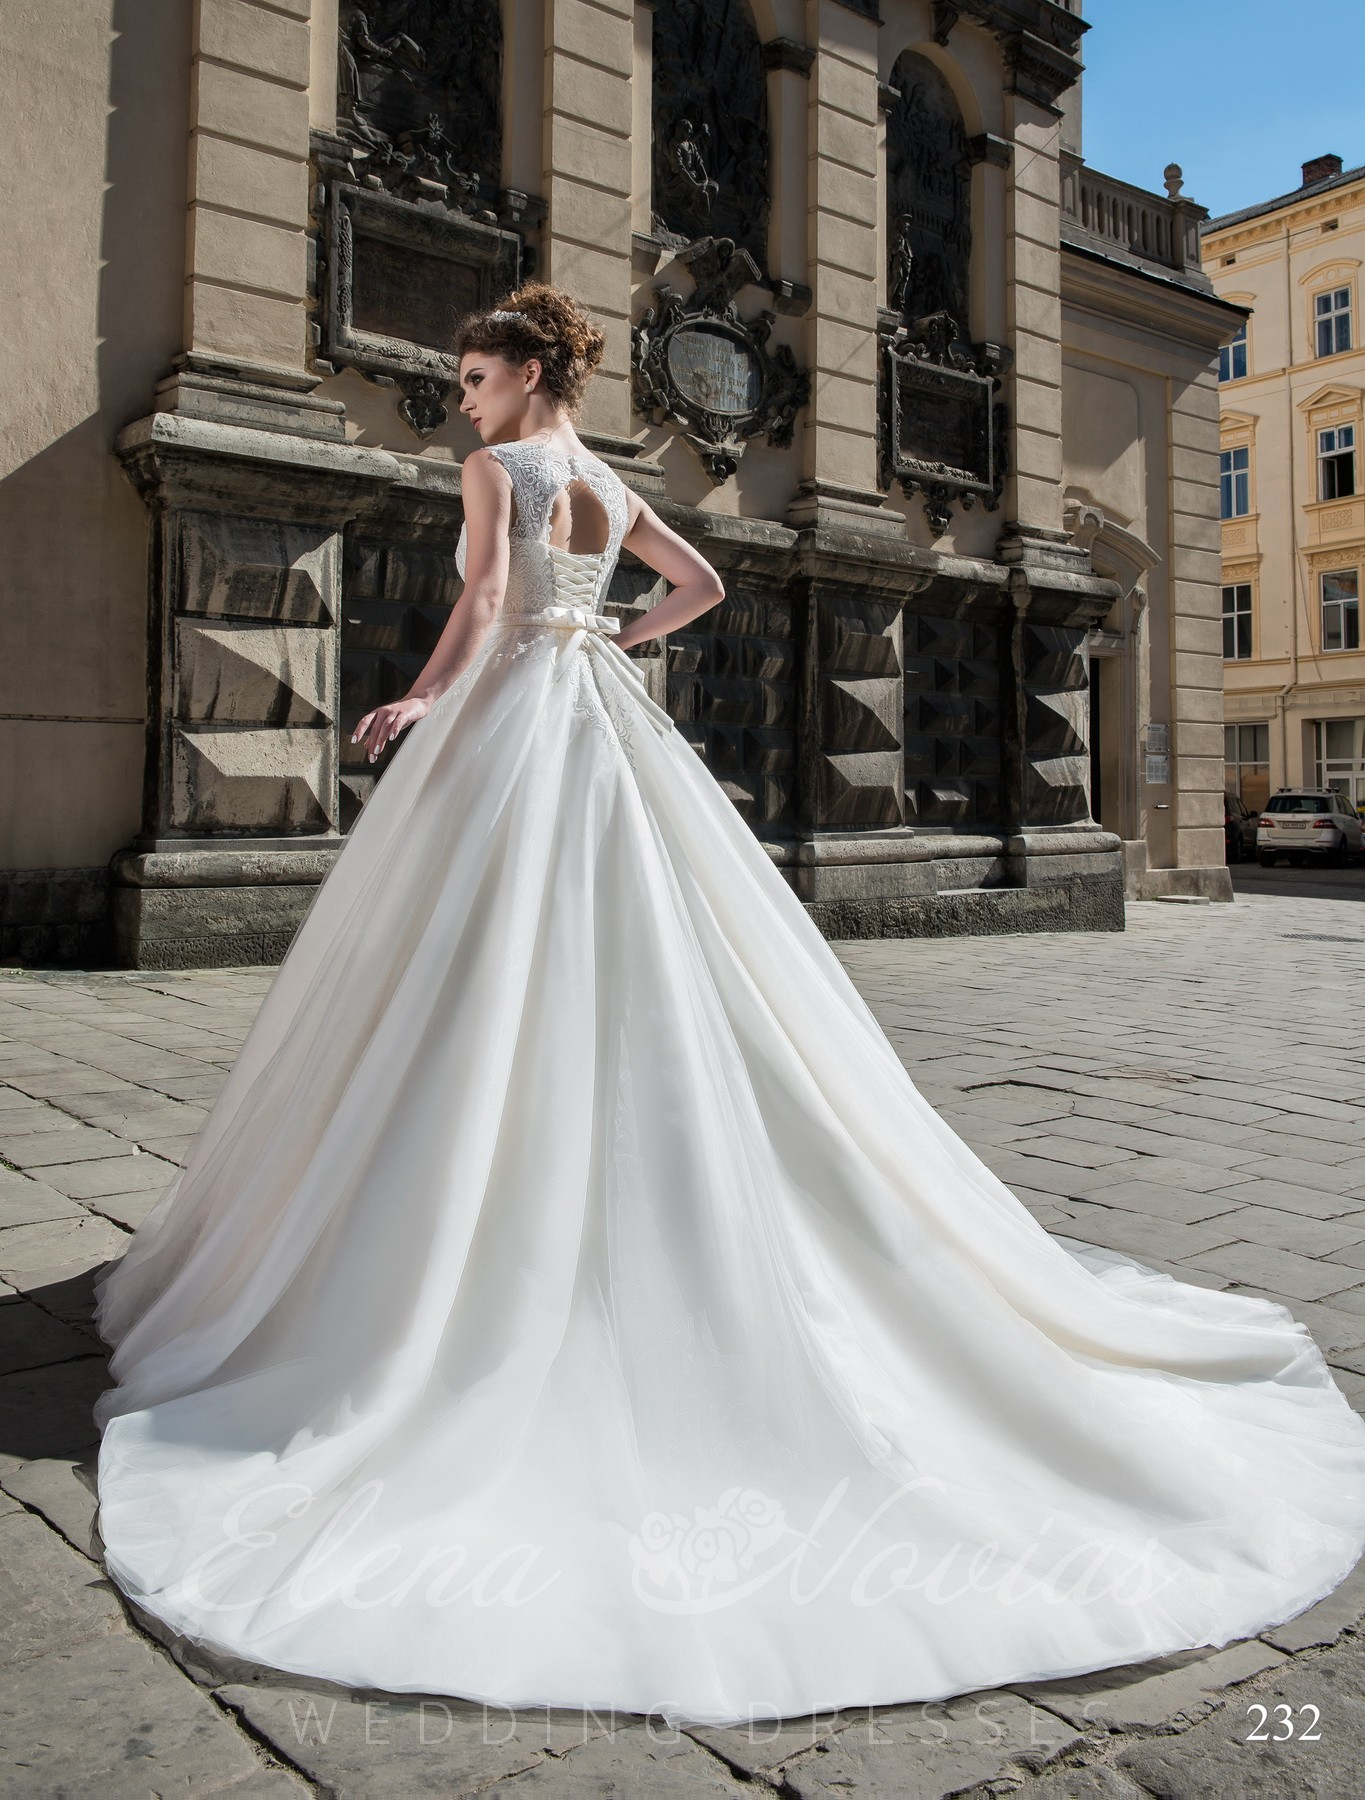 Ball gown wedding model 232